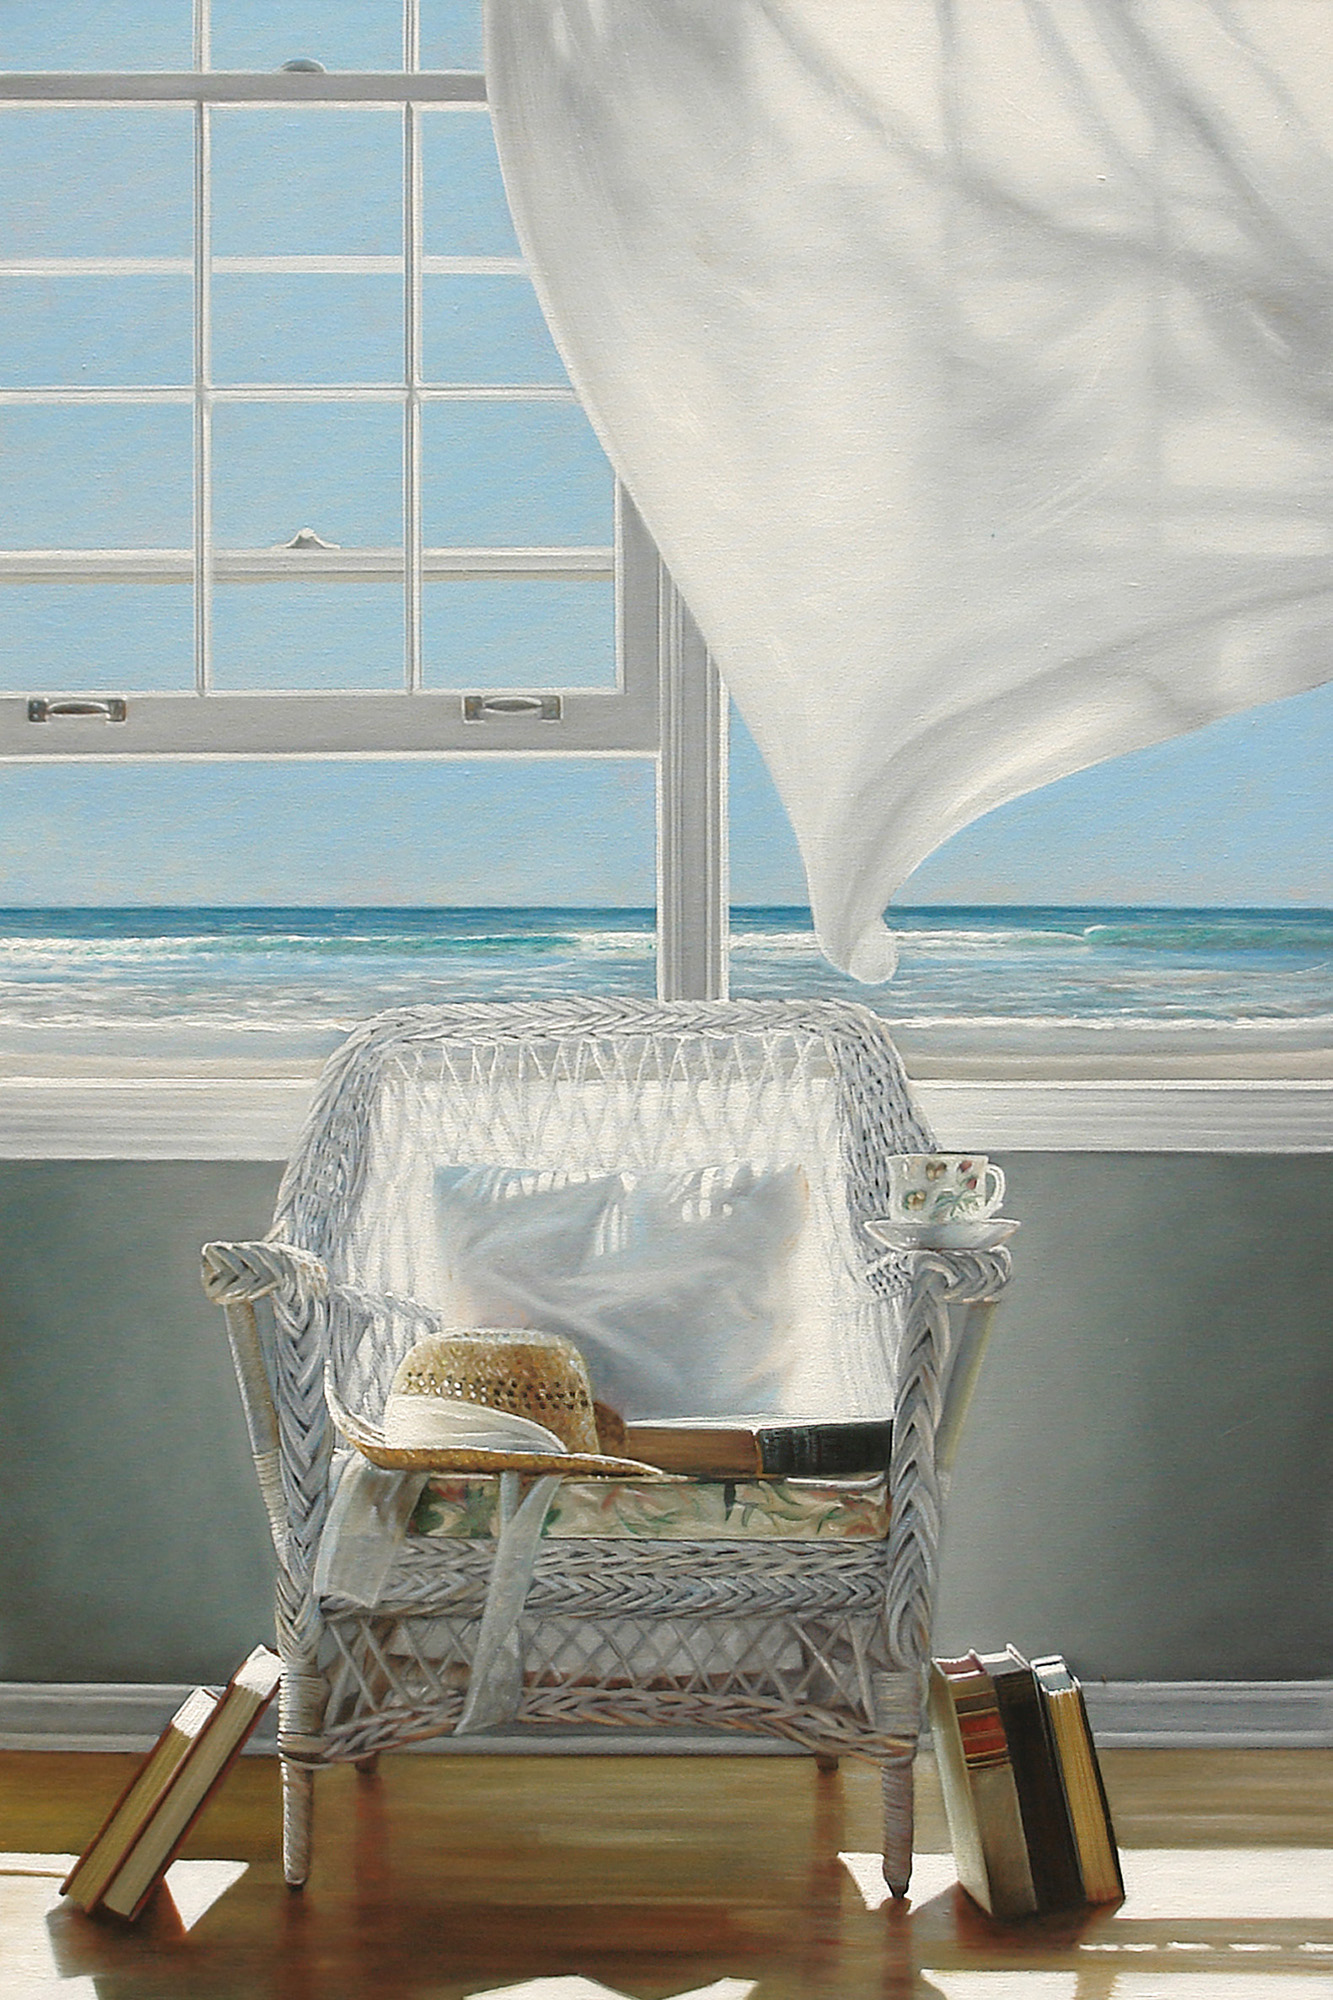 Beach Books  |  24 x 36  |  Oil on canvas